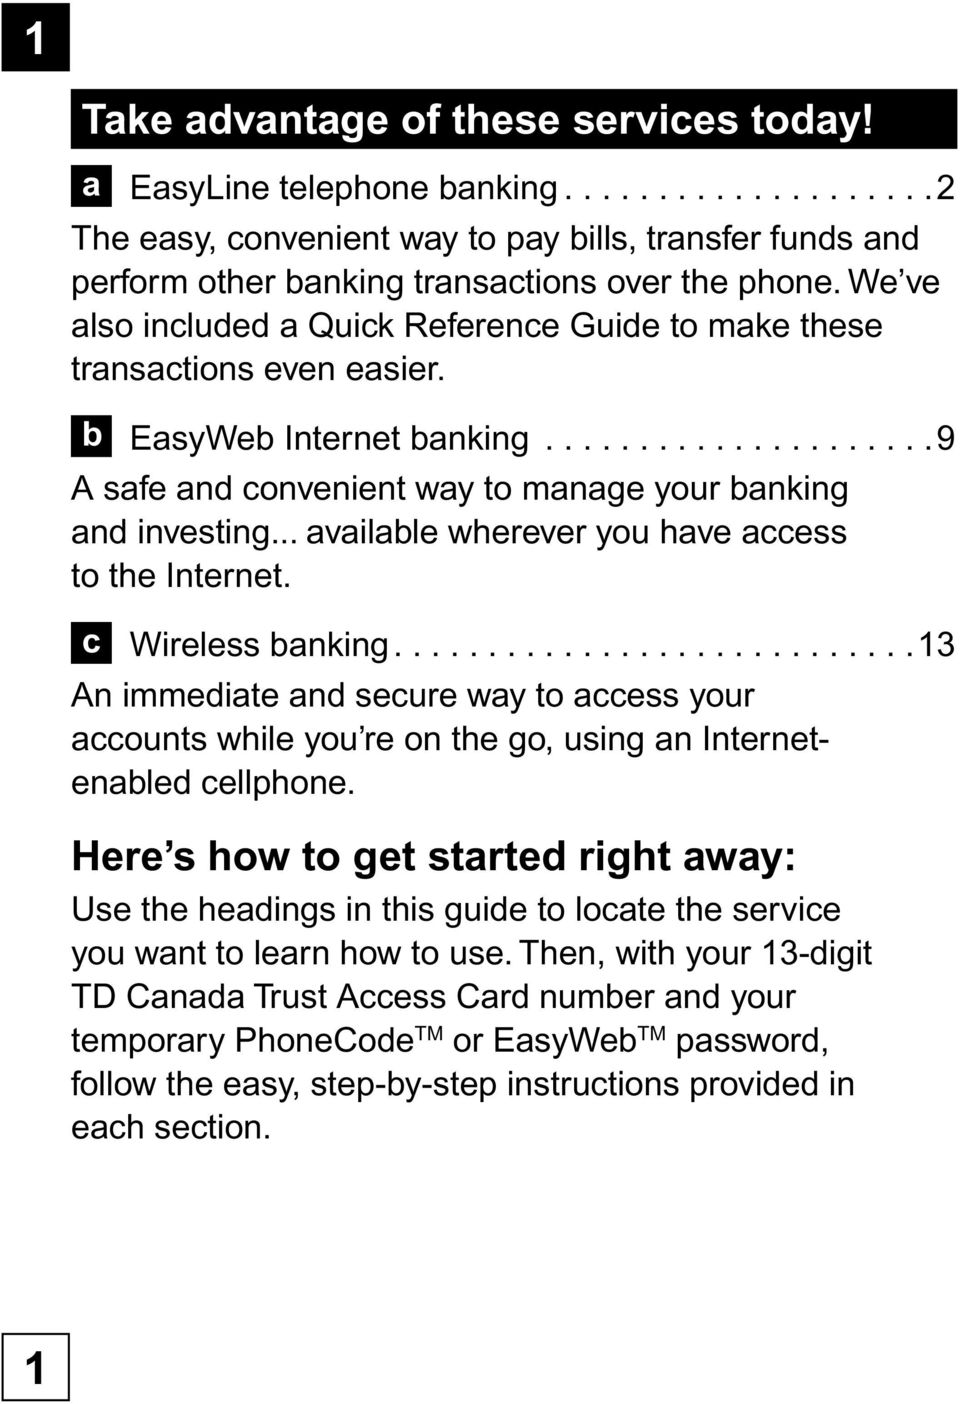 Get Started Today! EasyLine, EasyWeb and Wireless banking  Quick